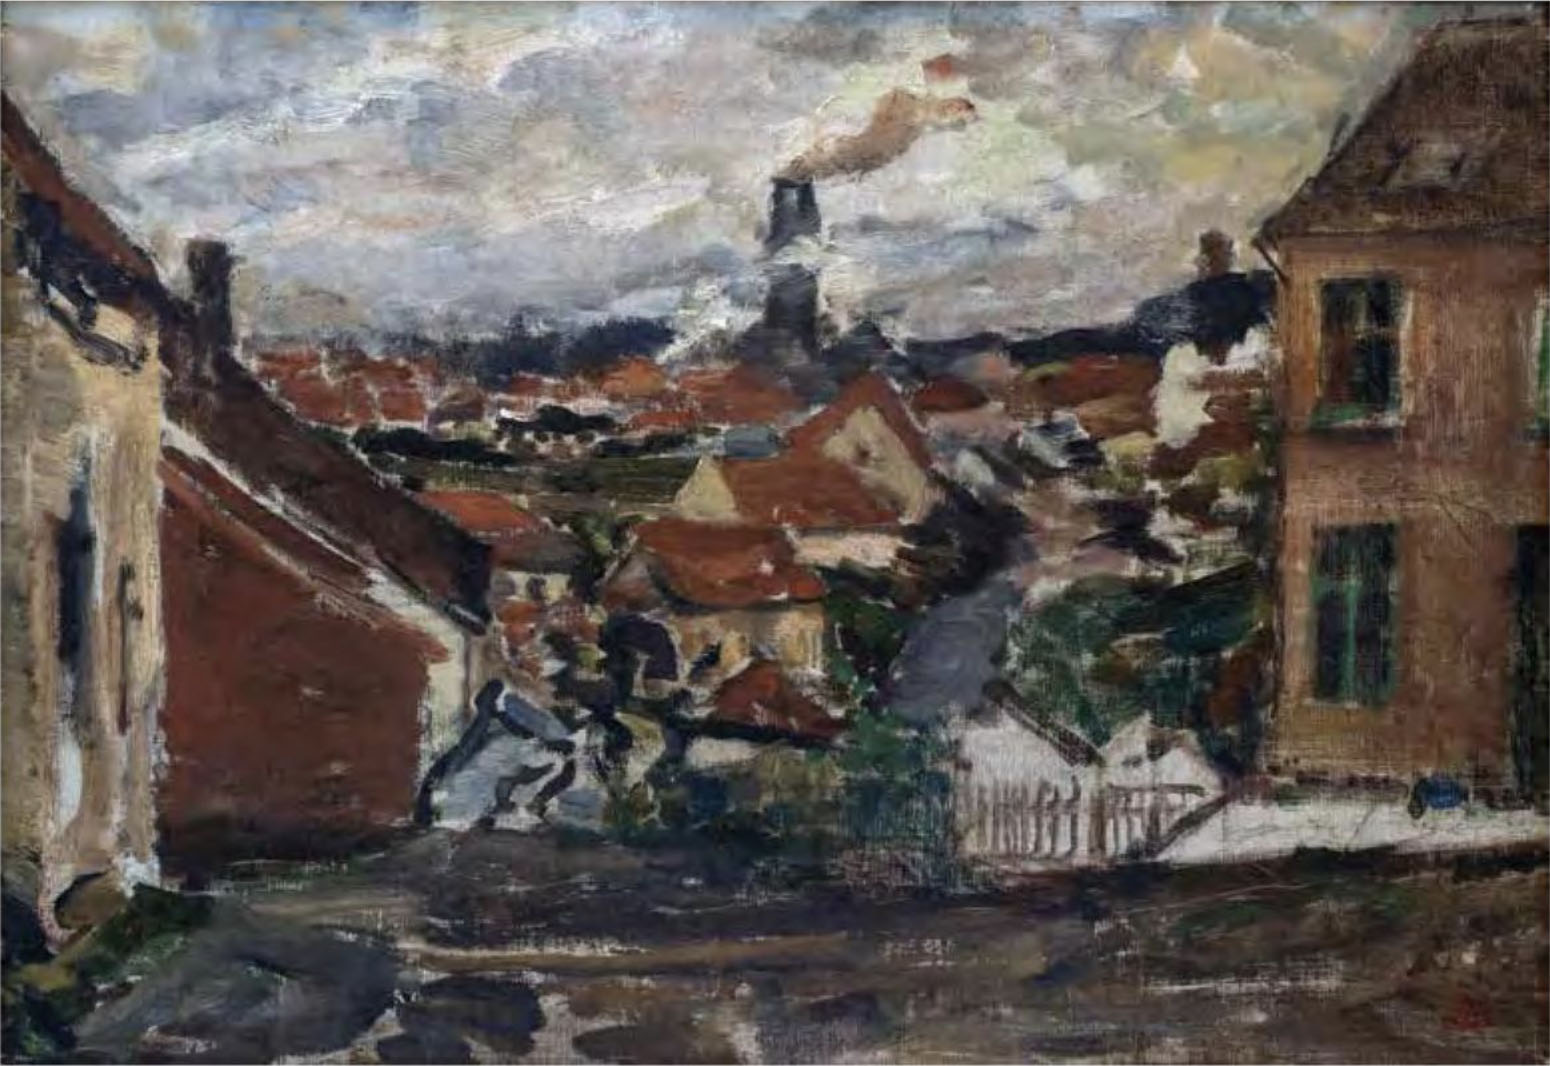 Constantin Meunier, The Red Roofs of Pâturages, after 1885, oil on canvas. Collection of Sura Levine.